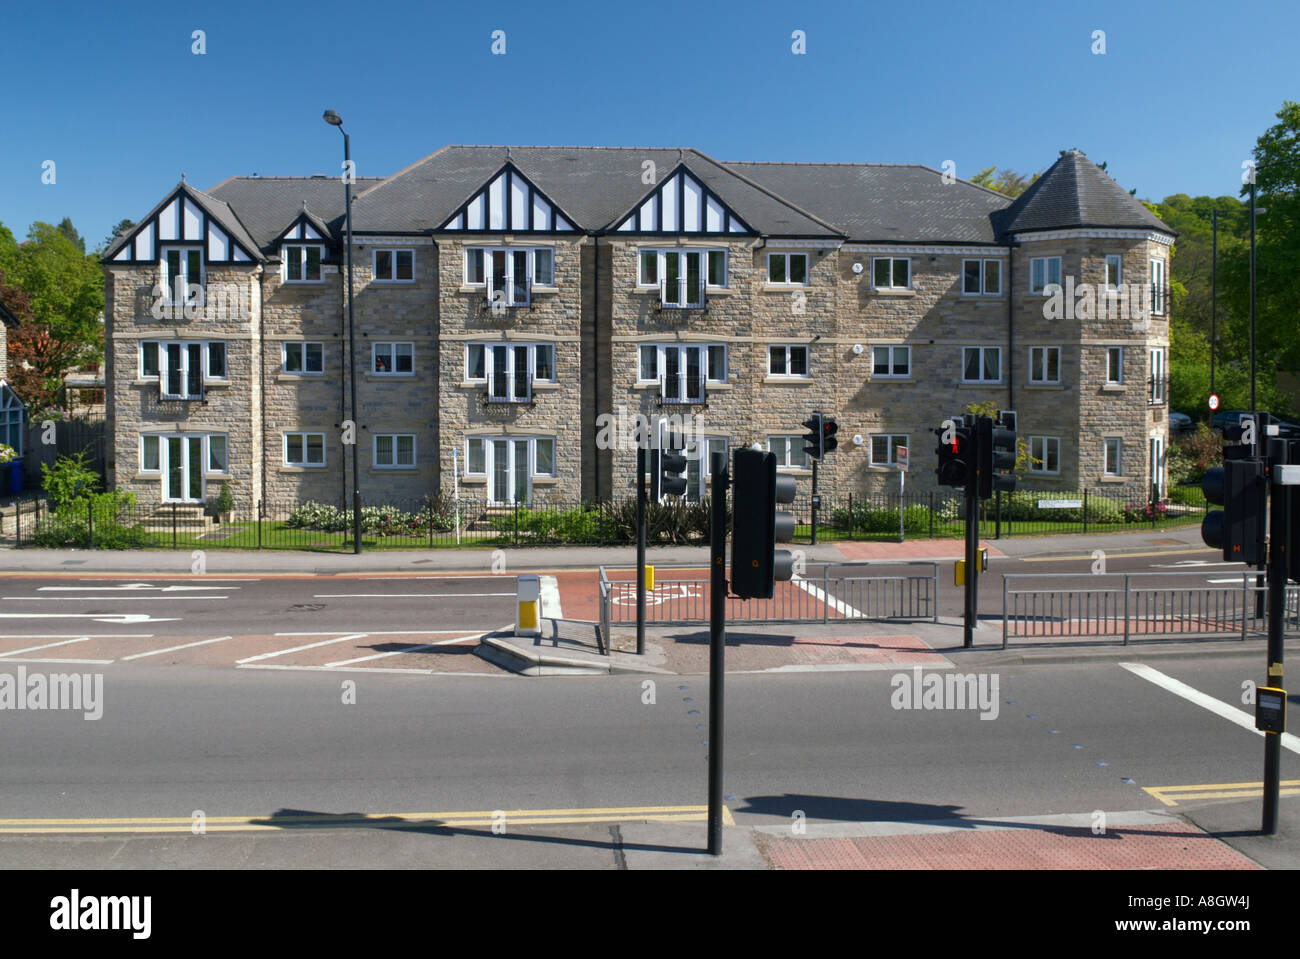 New completed block of apartments on Abbeydale Road in Sheffield 'Great Britain' - Stock Image